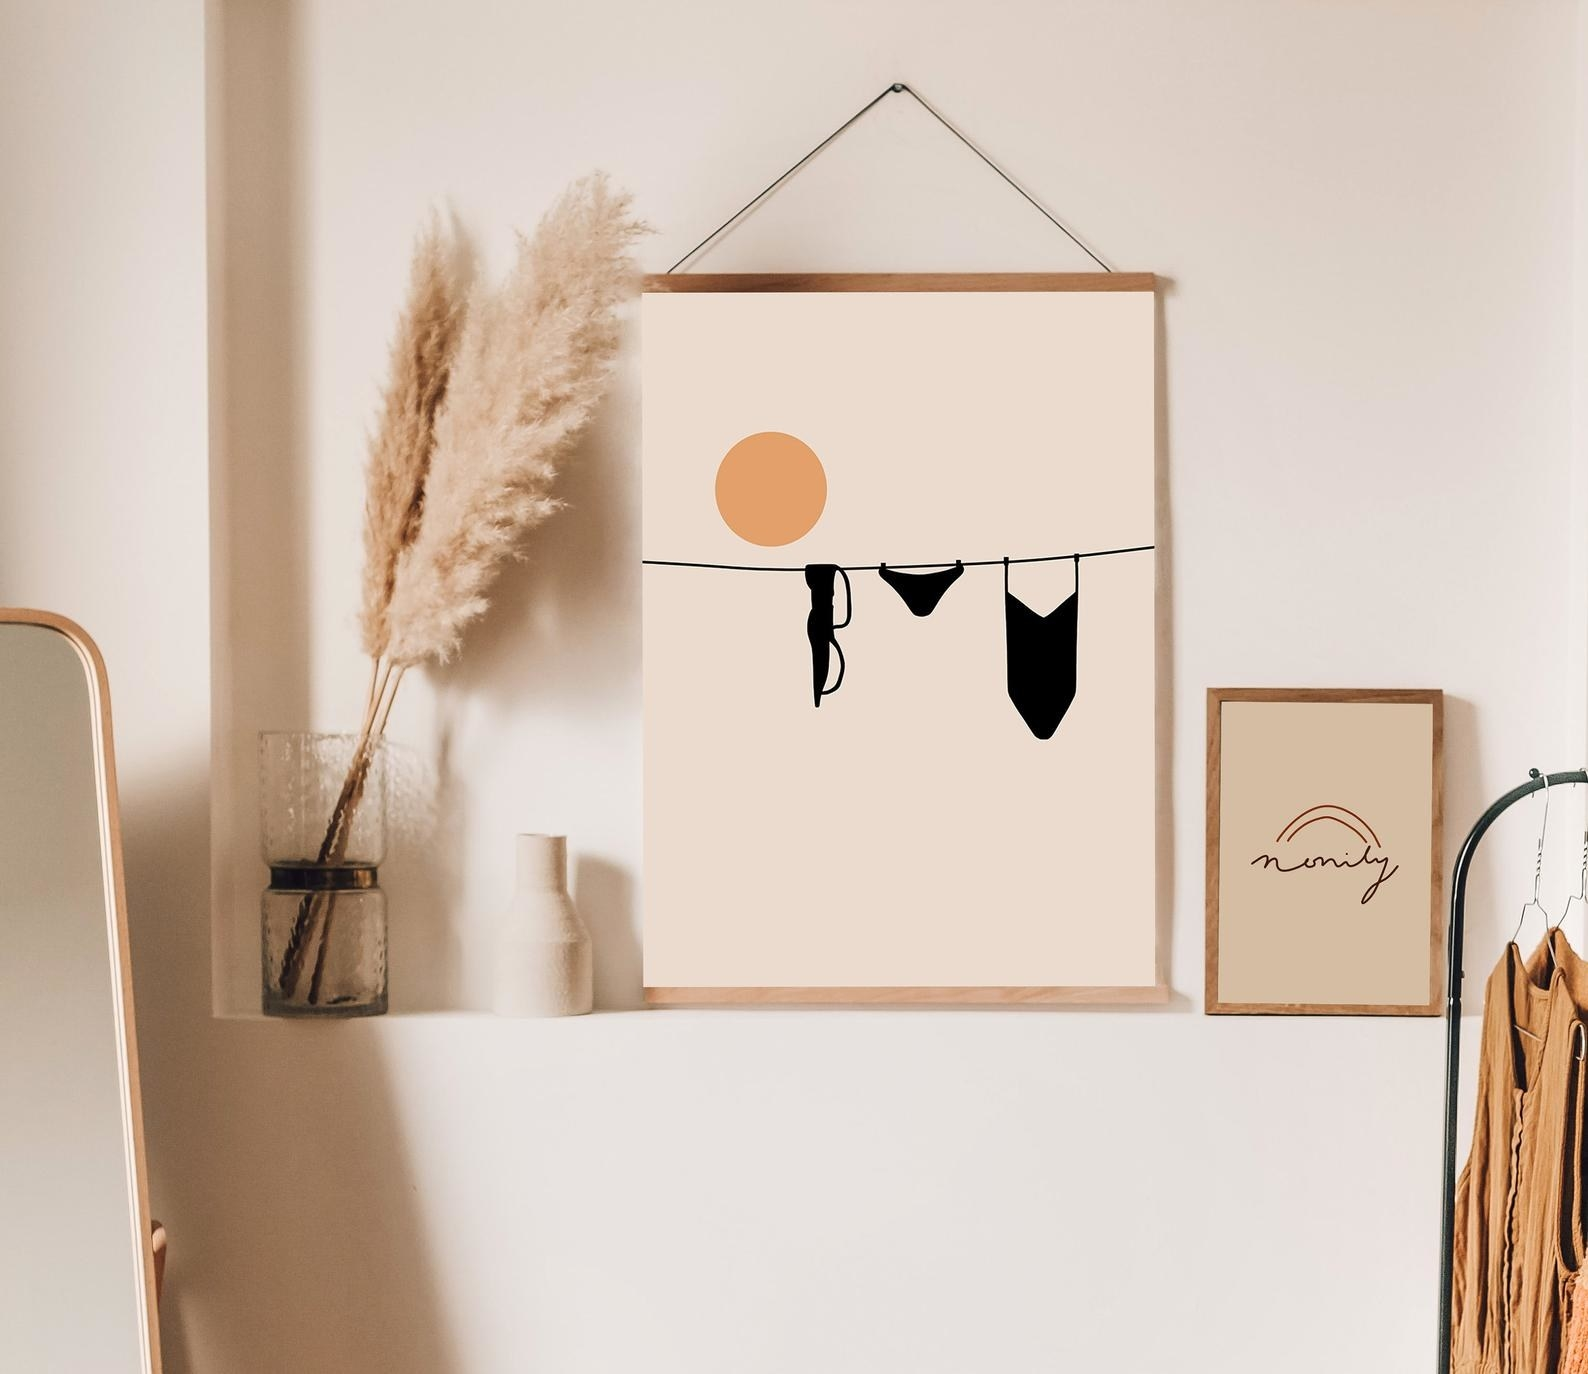 The clothes line art print hanging on a wall